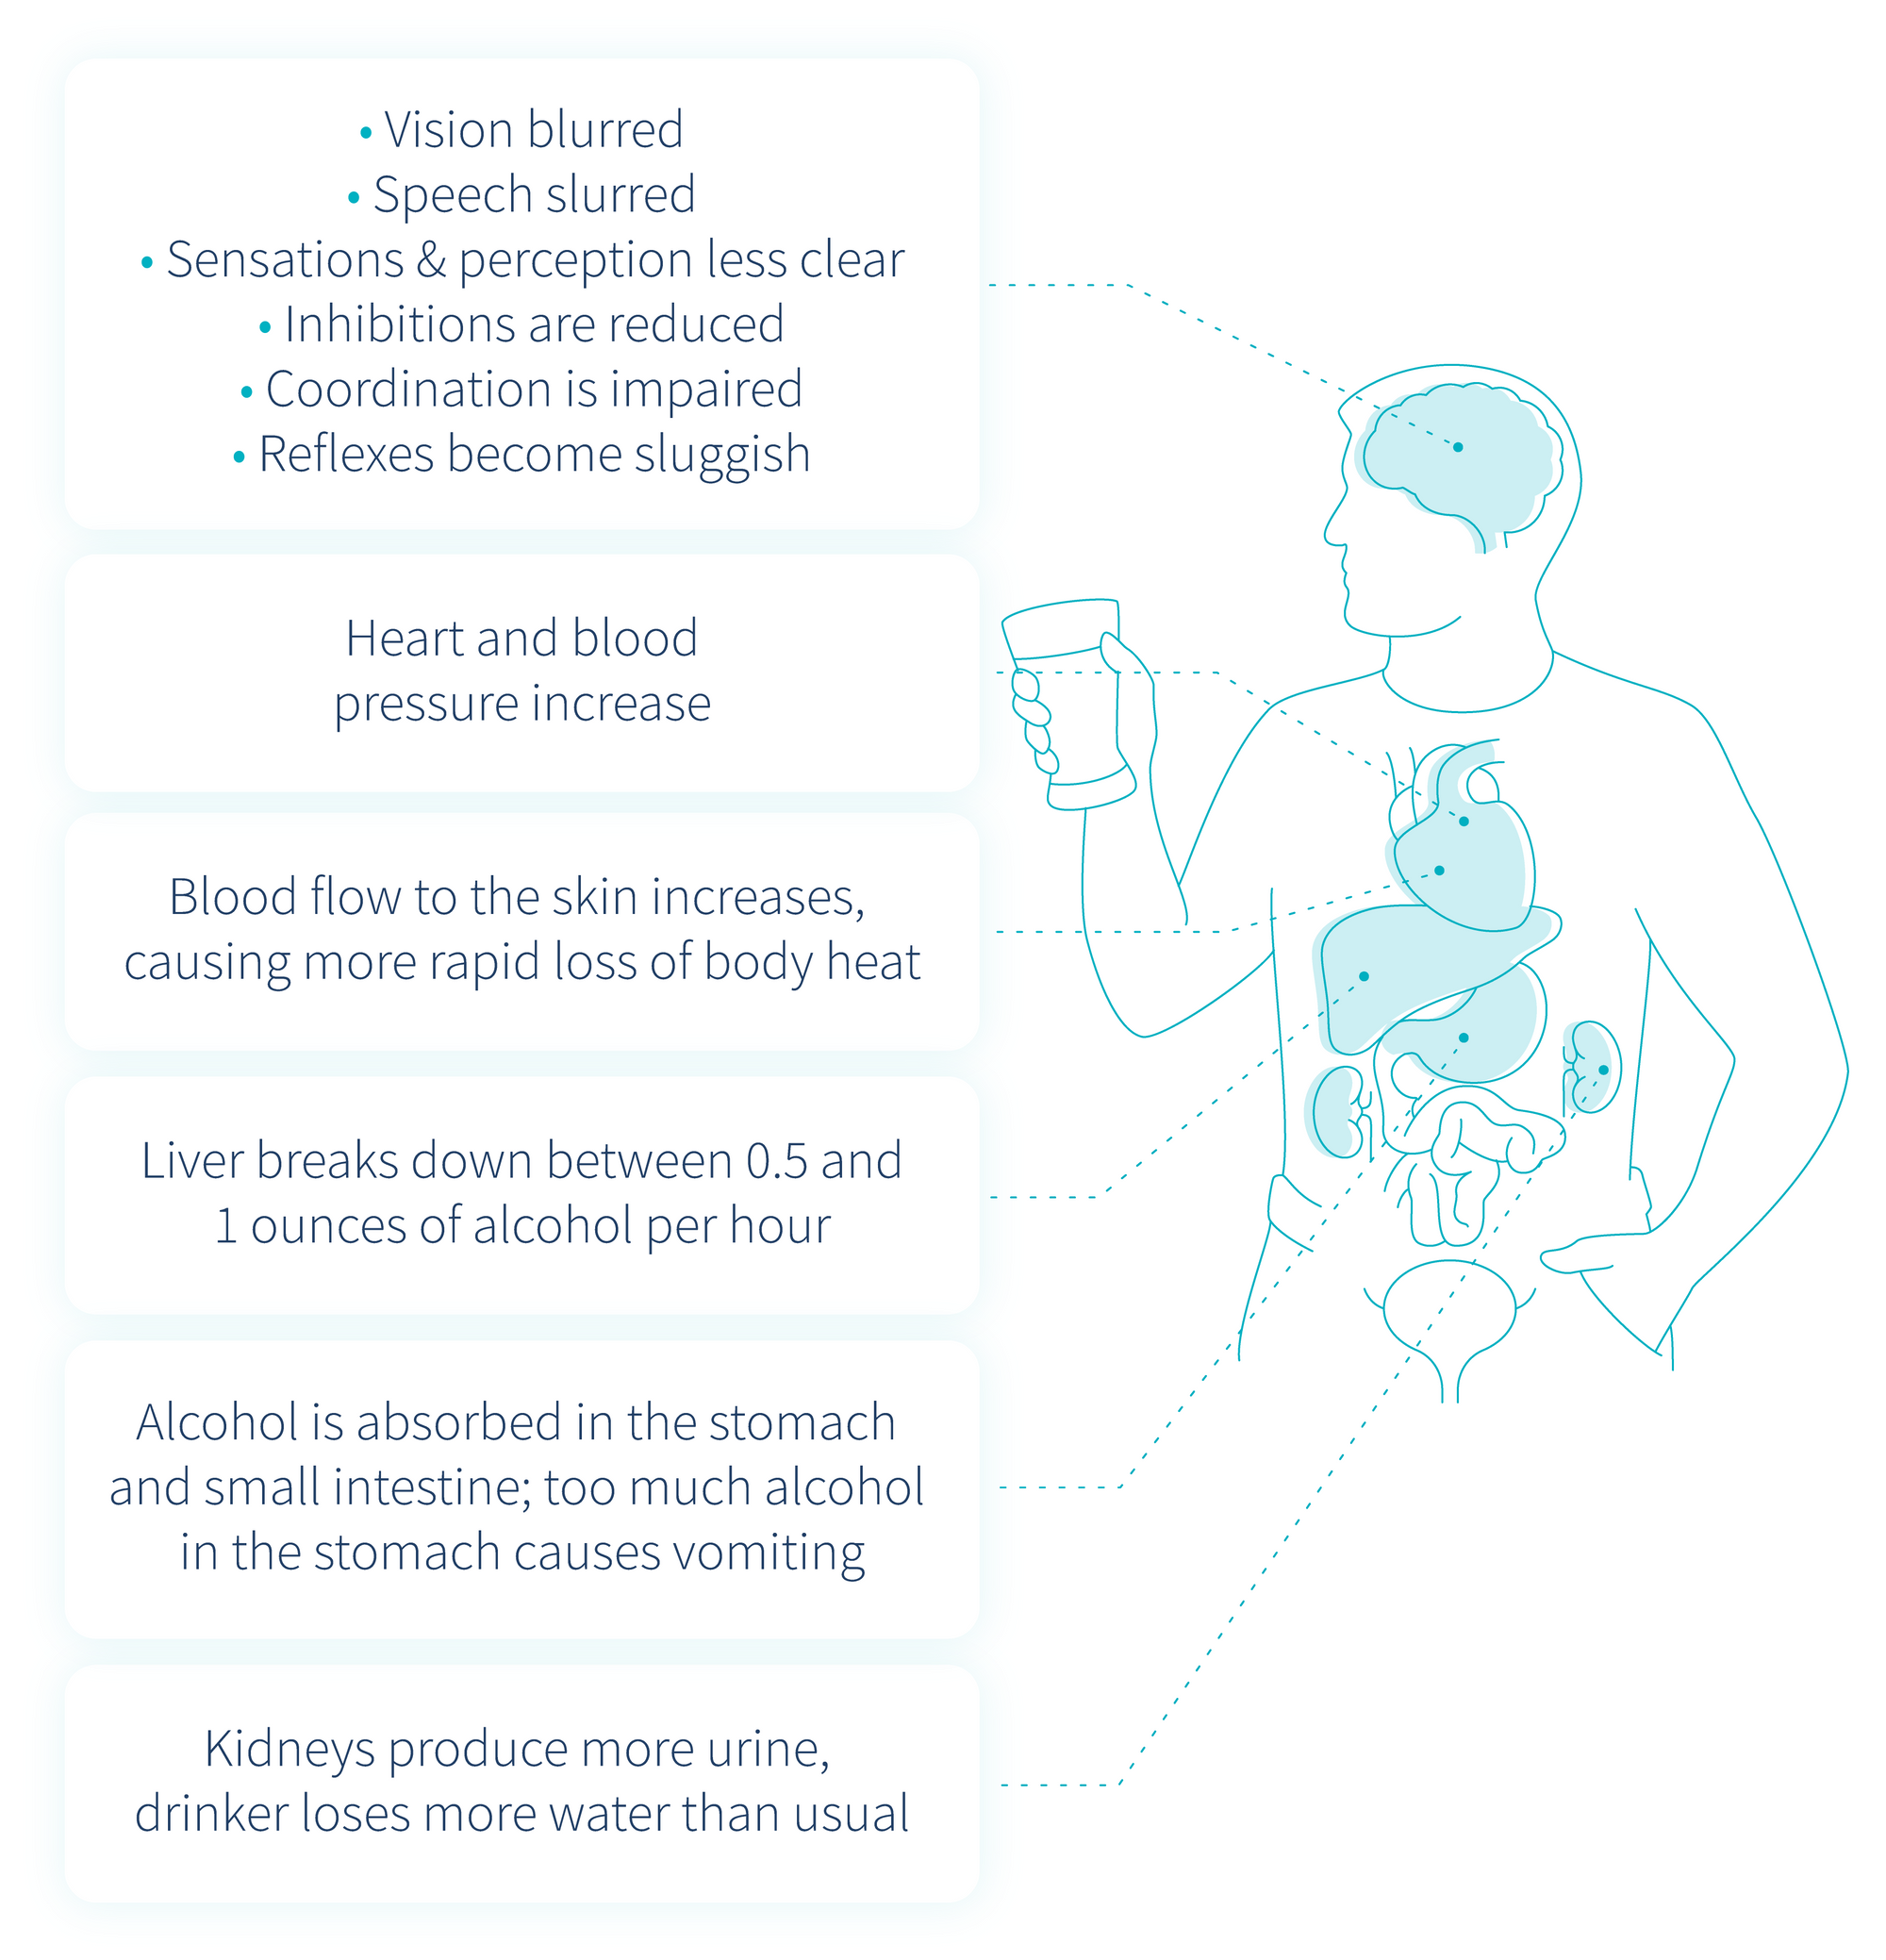 effects-of-alcohol-on-your-health-descriptive-diagram